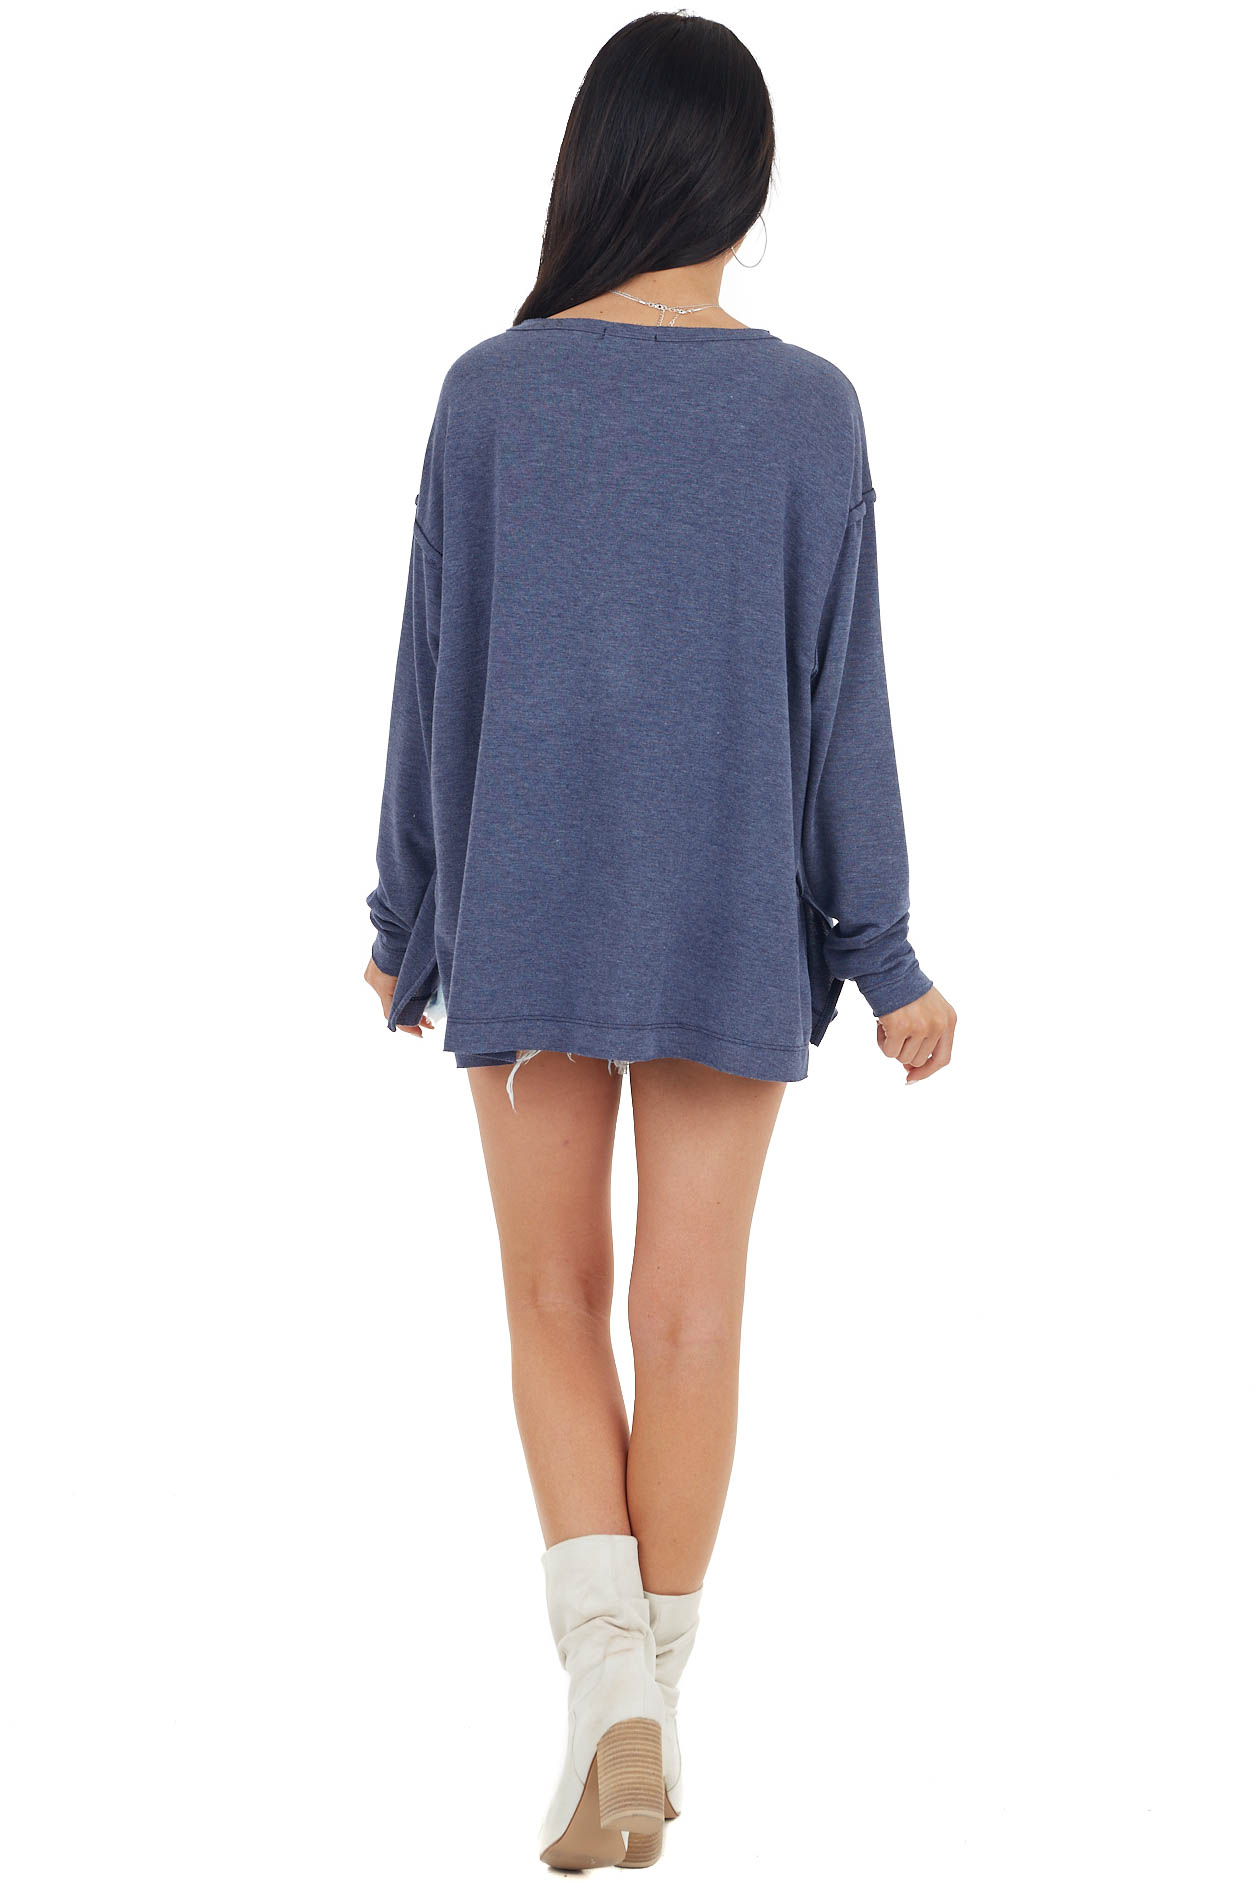 Navy Oversized Knit Top with Large Leopard Print Pocket